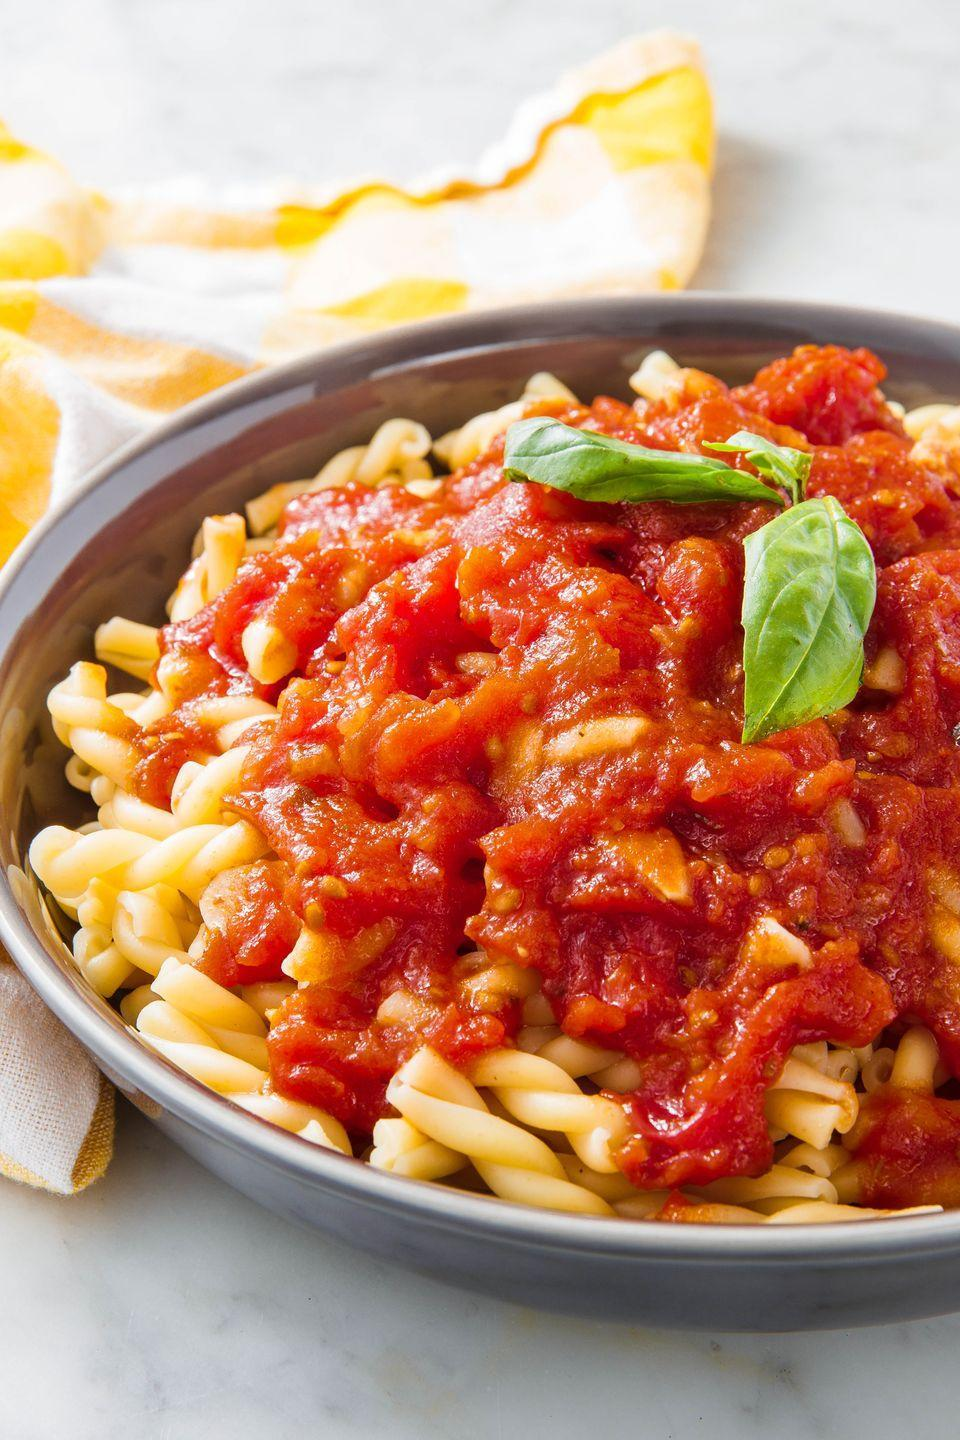 """<p>Don't forget to use whole tomatoes!</p><p>Get the recipe from <a href=""""https://www.delish.com/cooking/recipe-ideas/a24570093/marinara-sauce-recipe/"""" rel=""""nofollow noopener"""" target=""""_blank"""" data-ylk=""""slk:Delish"""" class=""""link rapid-noclick-resp"""">Delish</a>. </p>"""